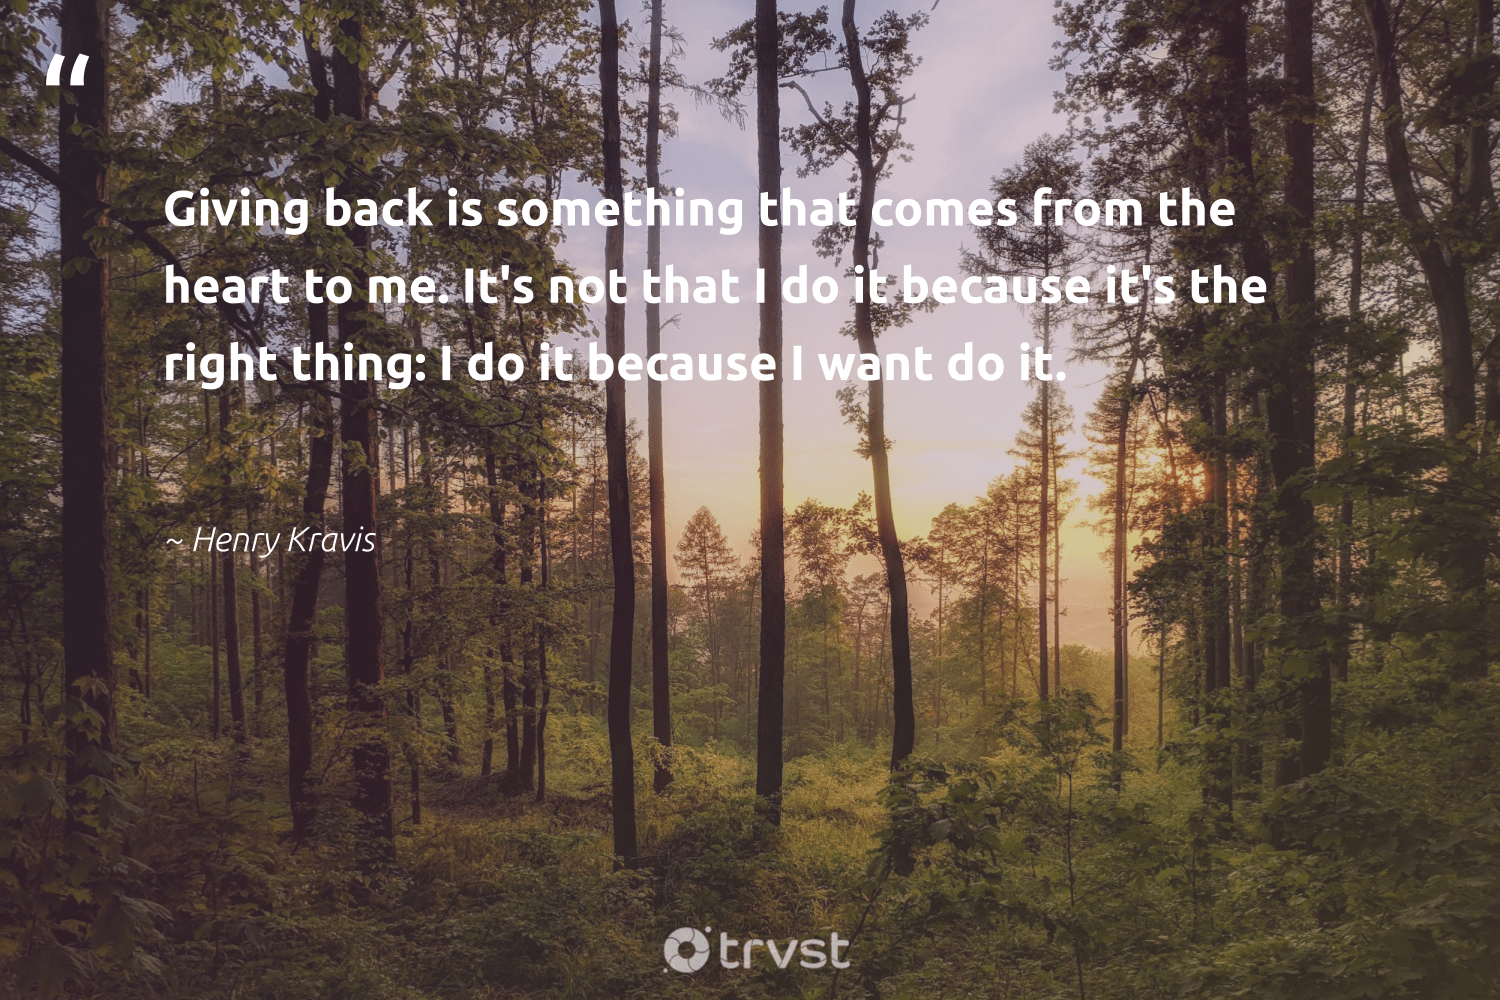 """""""Giving back is something that comes from the heart to me. It's not that I do it because it's the right thing: I do it because I want do it.""""  - Henry Kravis #trvst #quotes #givingback #dogood #giveback #changemakers #togetherwecan #takeaction #socialgood #itscooltobekind #giveforthefuture #dosomething"""